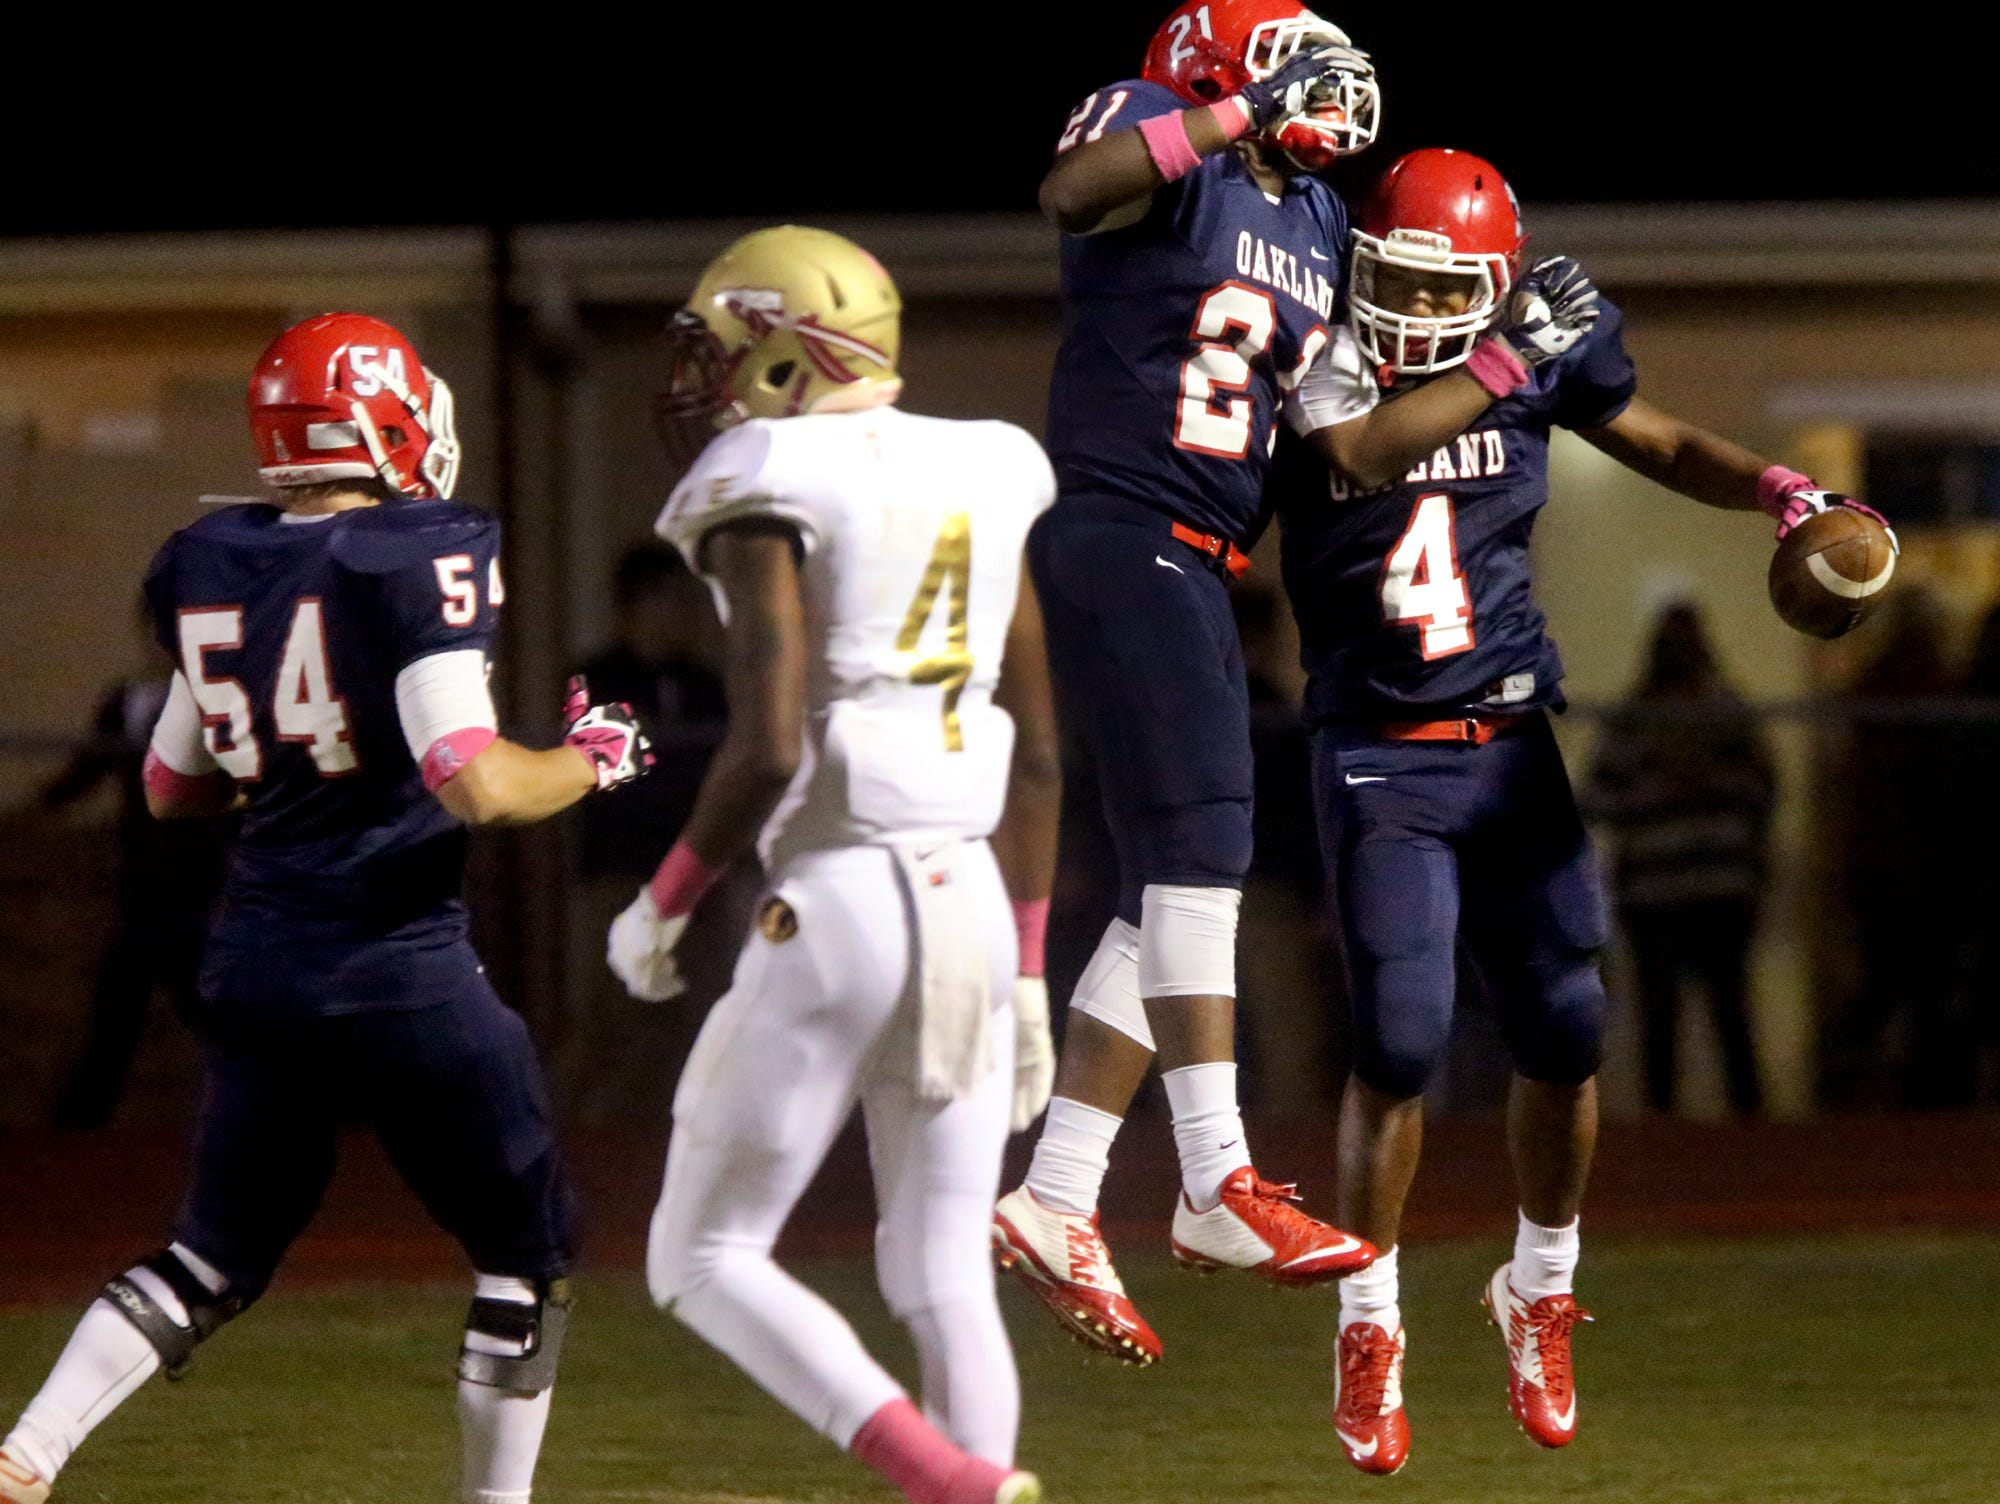 Oakland's Justice Dingle (21) and Lazarius Patterson (4) celebrate Oakland's first touchdown of the game against Riverdale at Oakland, on Friday Oct. 16, 2015. Oakland's Jacob Frazier (54) moves in to join the celebration as Riverdale's Marquise Cantrell (4) walks off.